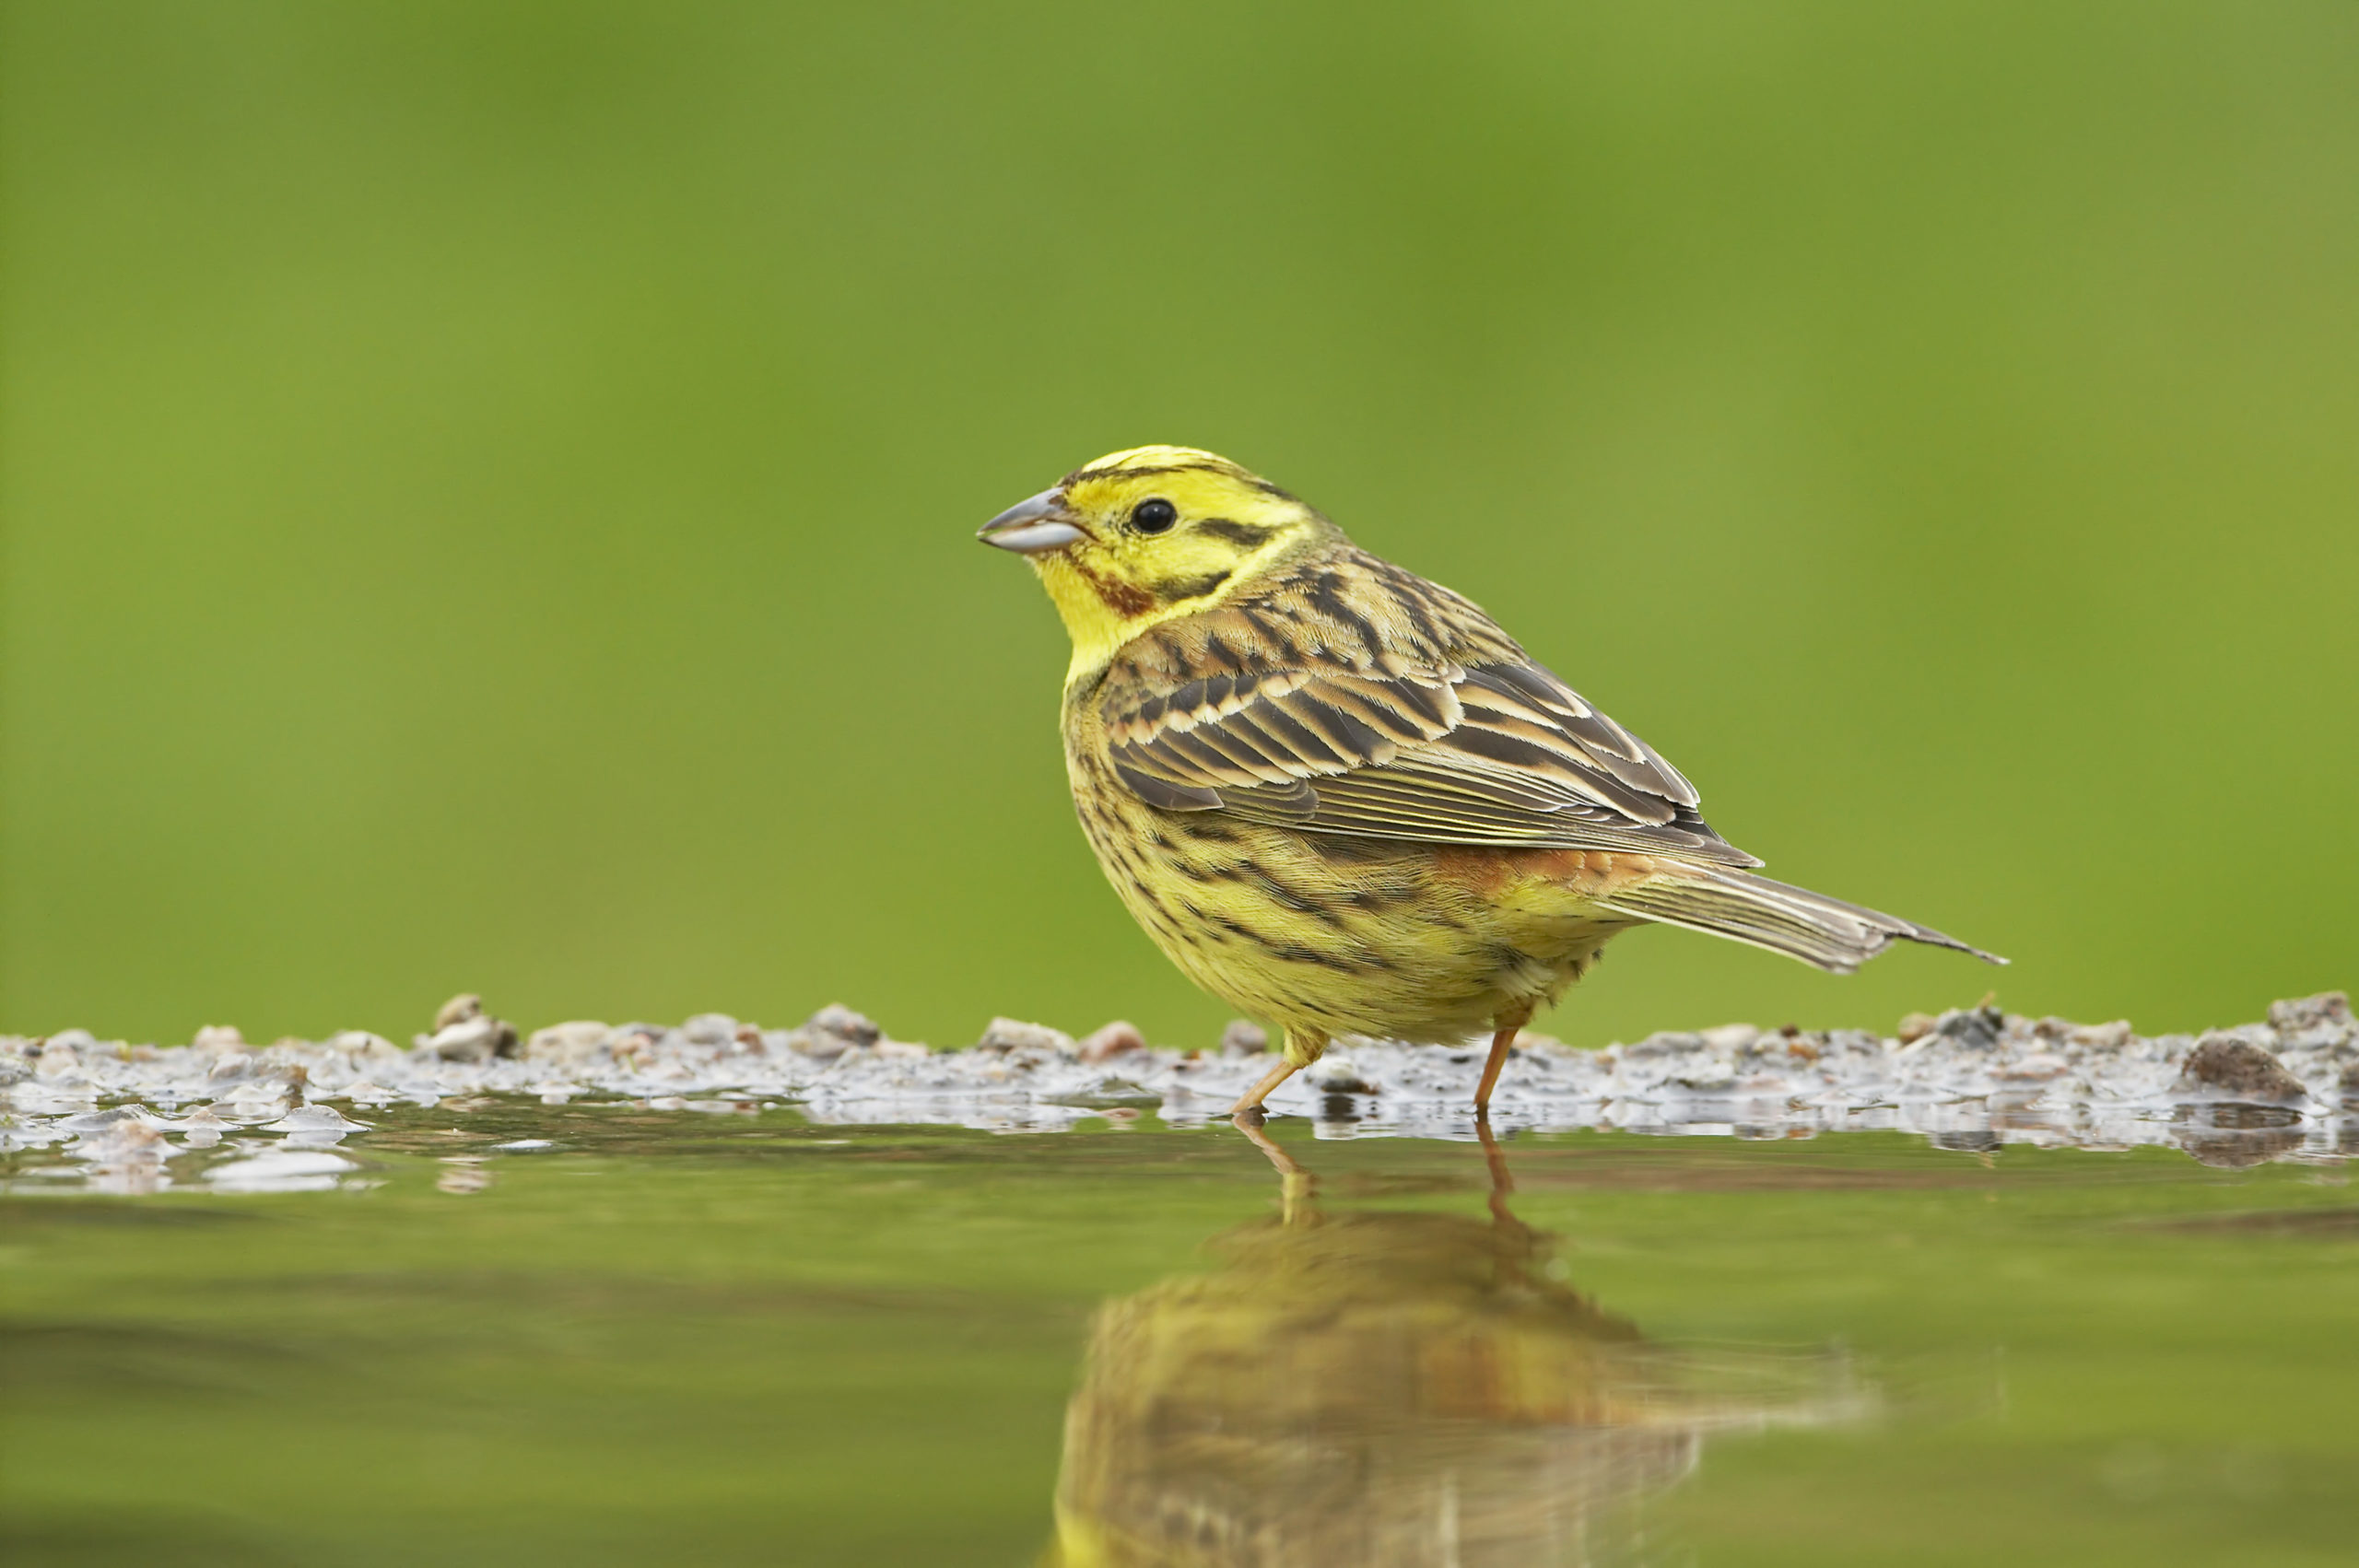 Mandatory Credit: Photo by Tony Hamblin/Flpa/imageBROKER/Shutterstock (5301526a) Yellowhammer (Emberiza citrinella), adult male, drinking, standing at edge of pond, Scotland, United Kingdom, Europe VARIOUS